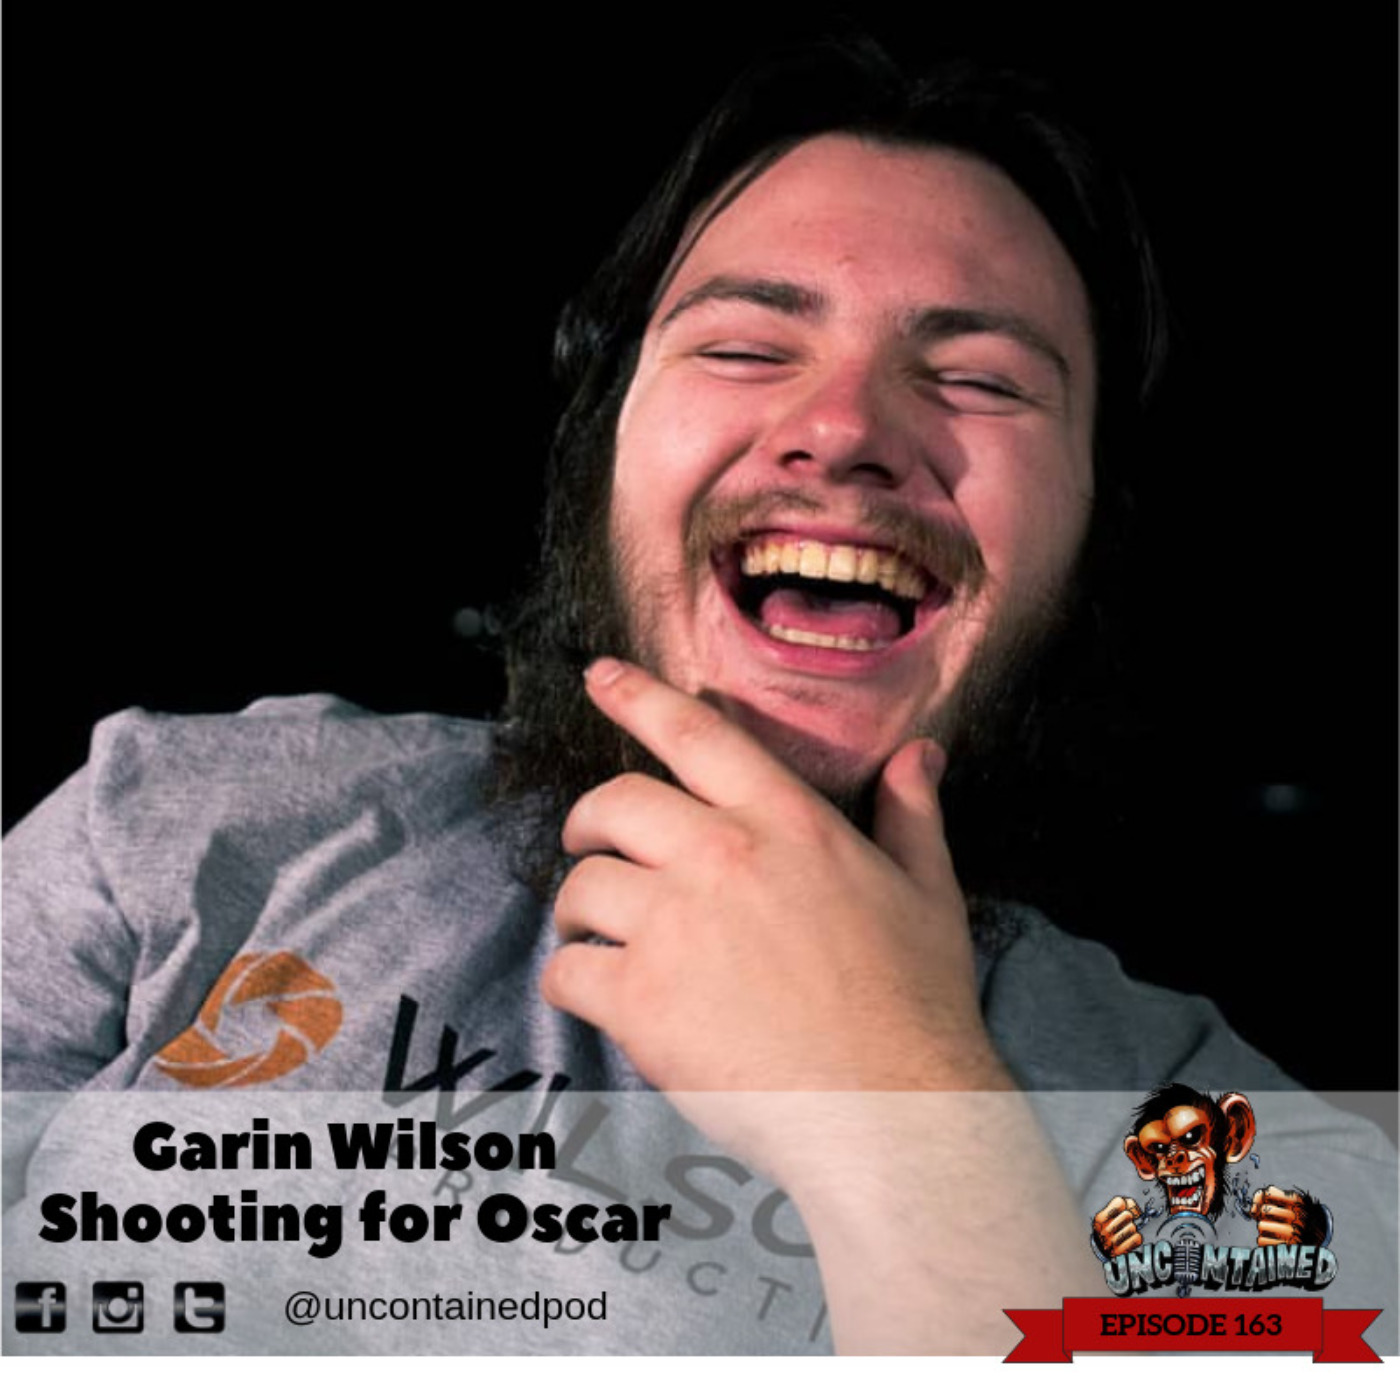 Episode 163: Garin Wilson - Shooting For Oscar